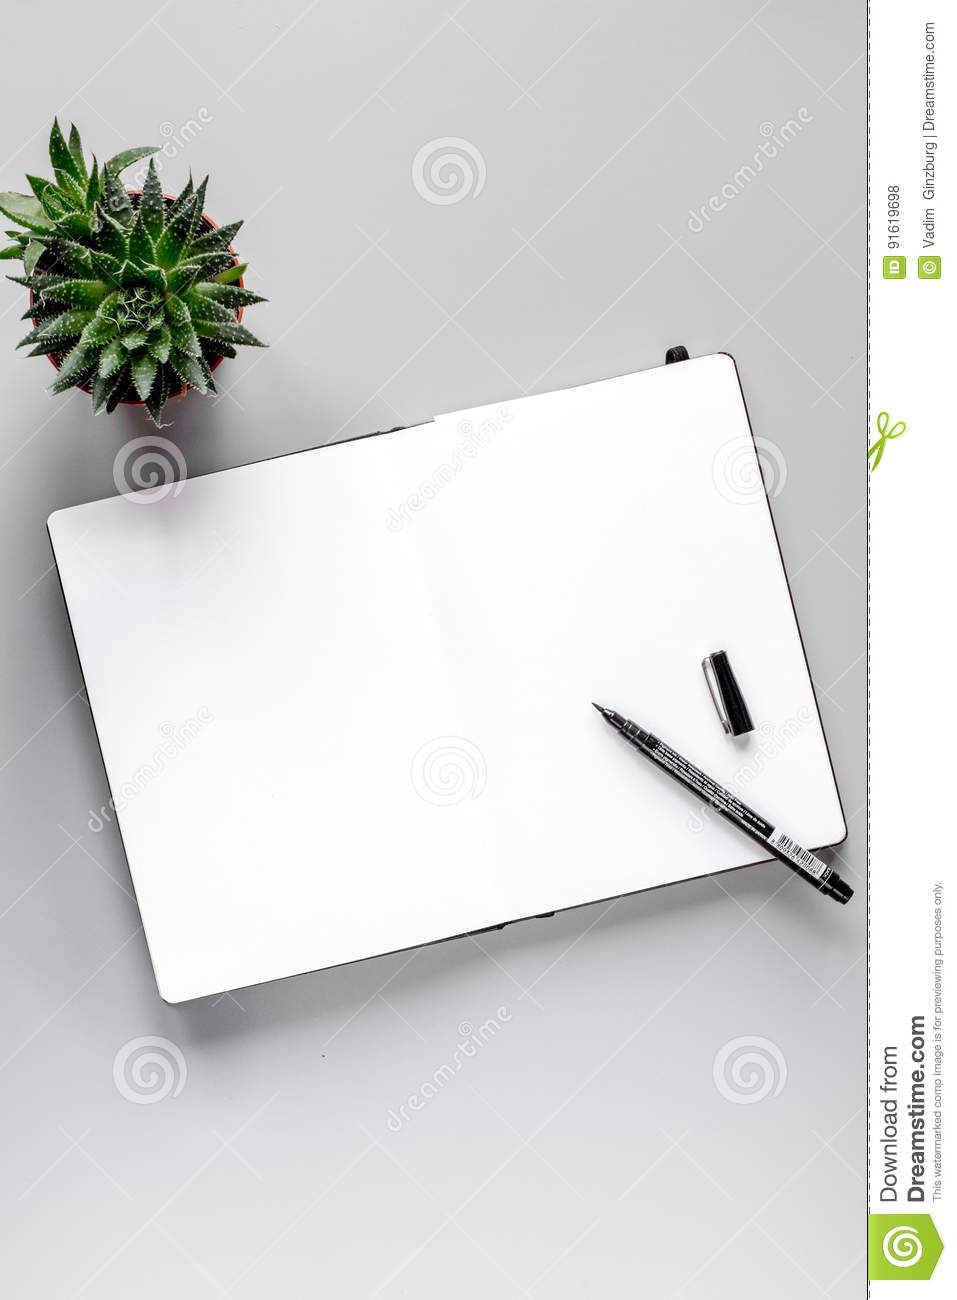 business plan with copybook on gray table background top view mock